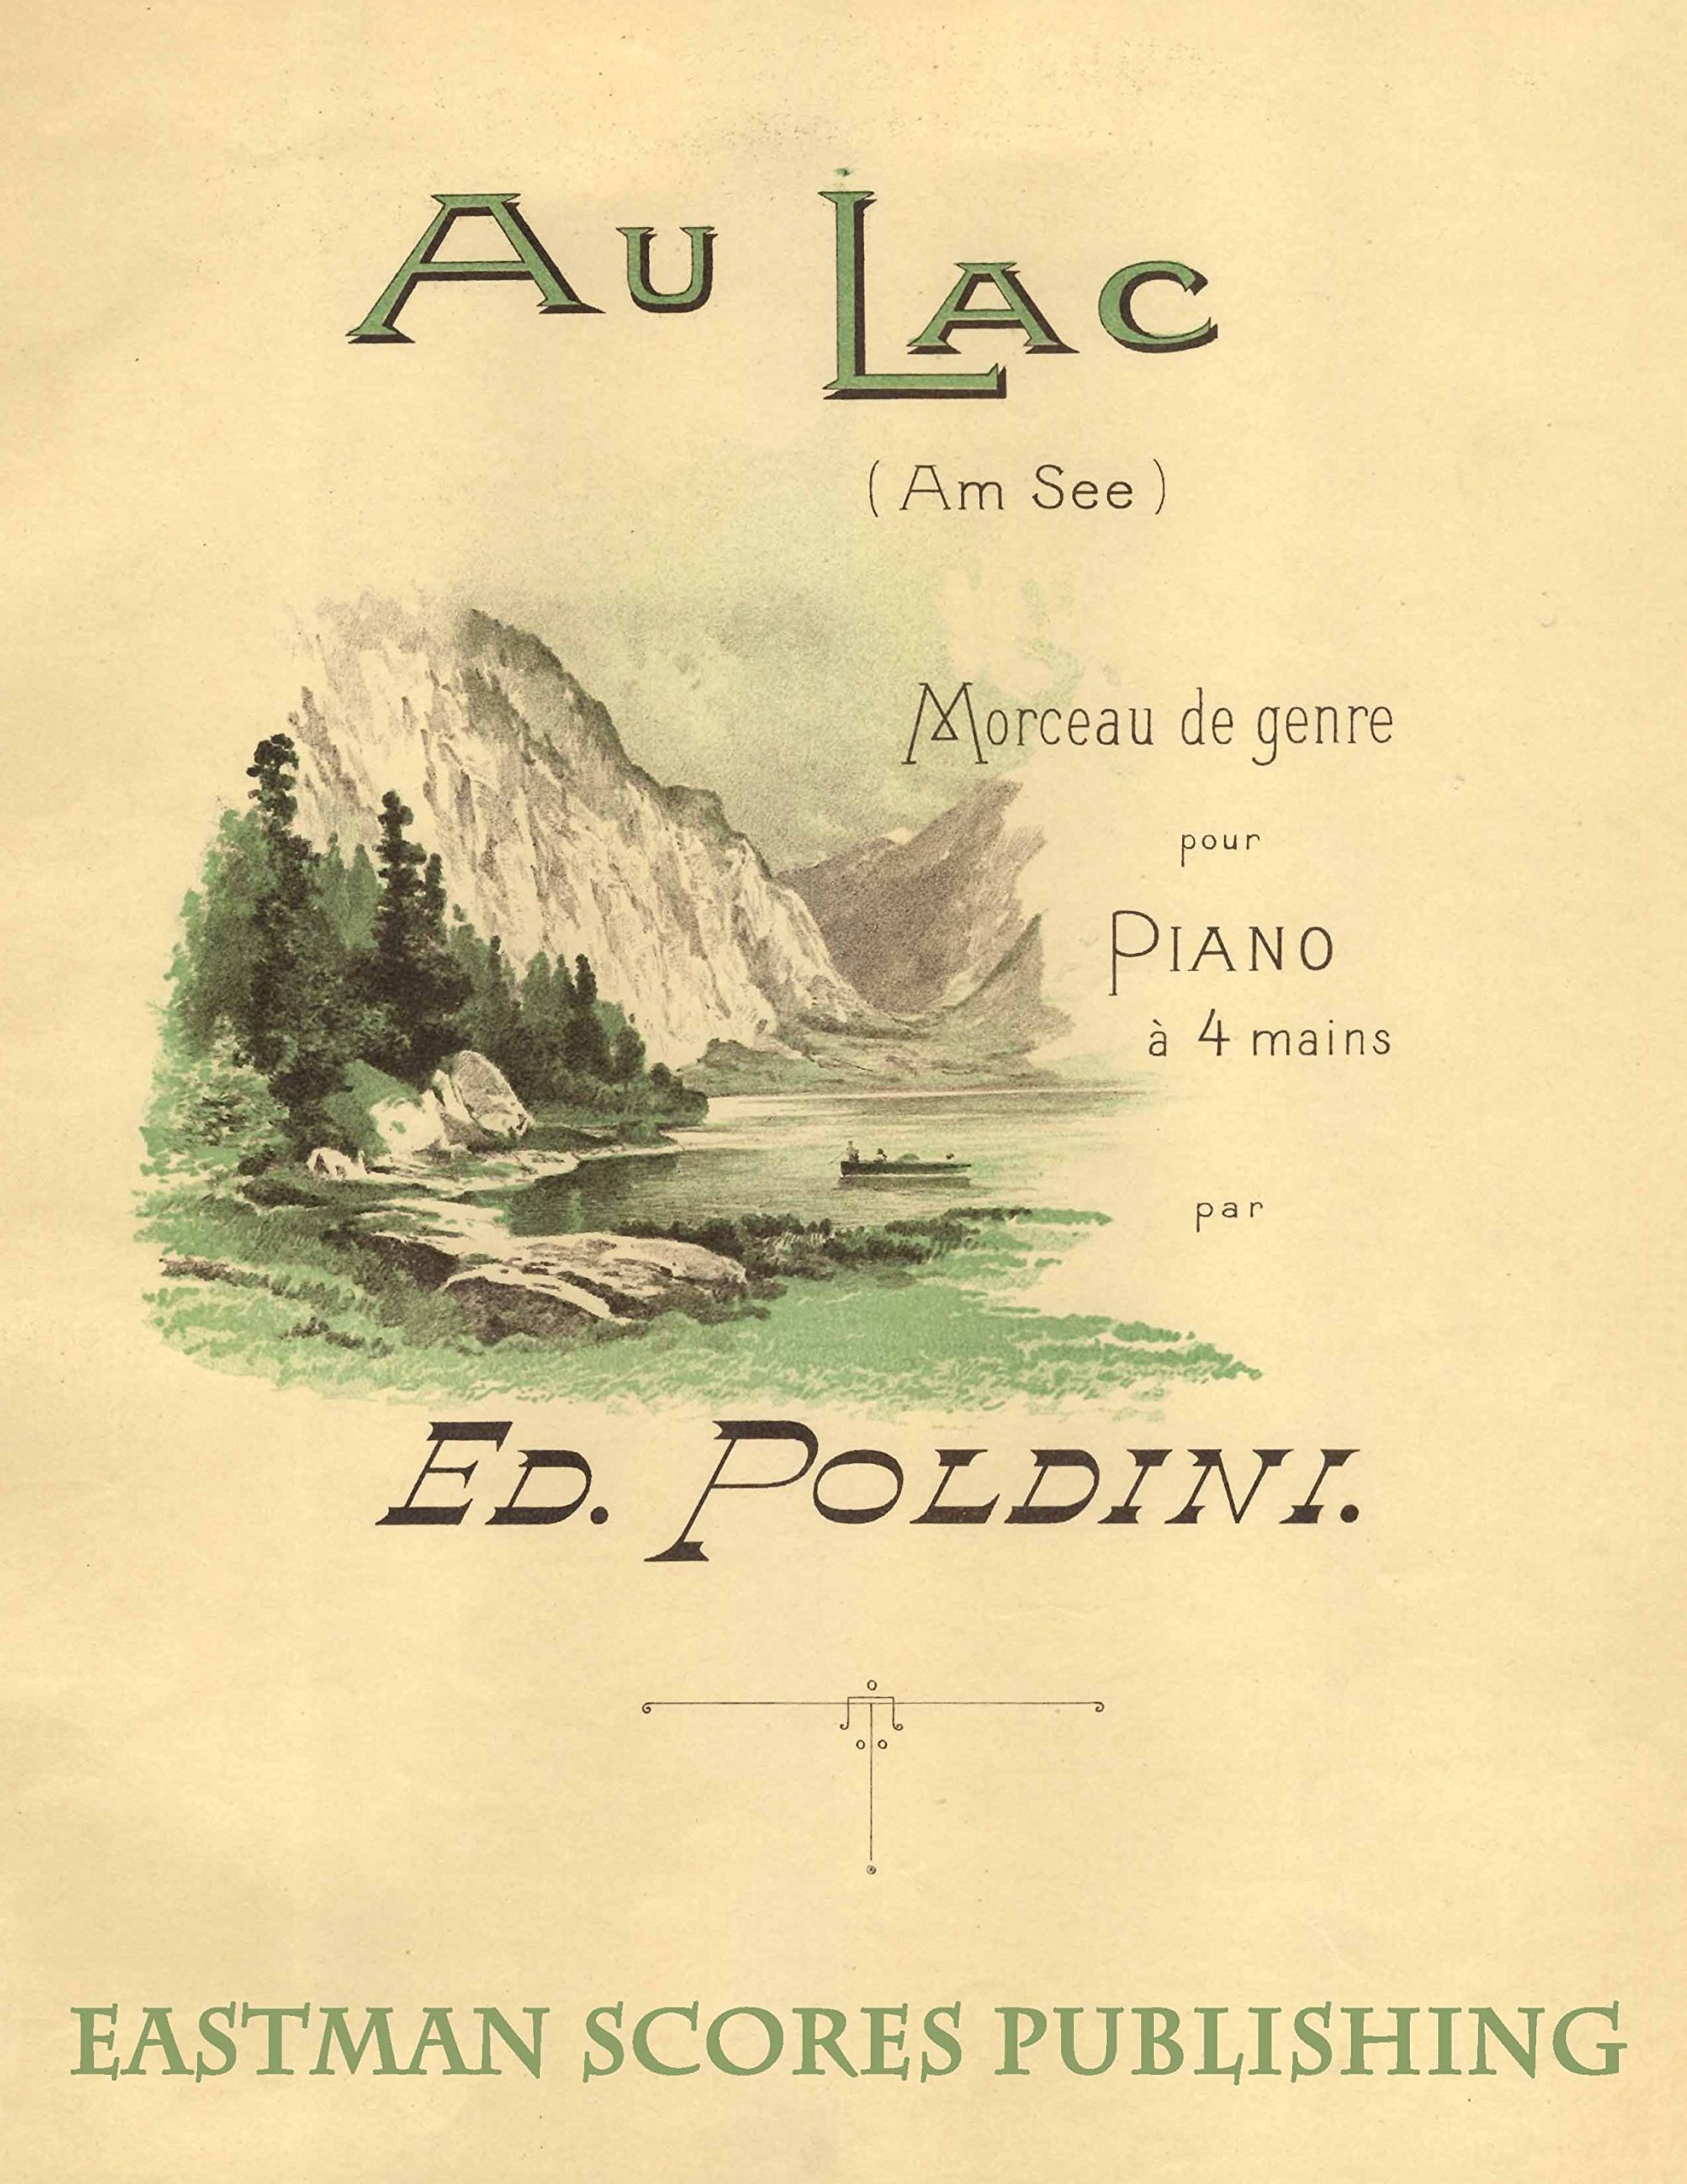 Download Poldini, Ede : Au lac, Genrestücke : fur Pianoforte zu vier Handen, Op. 12, no. 1 ebook